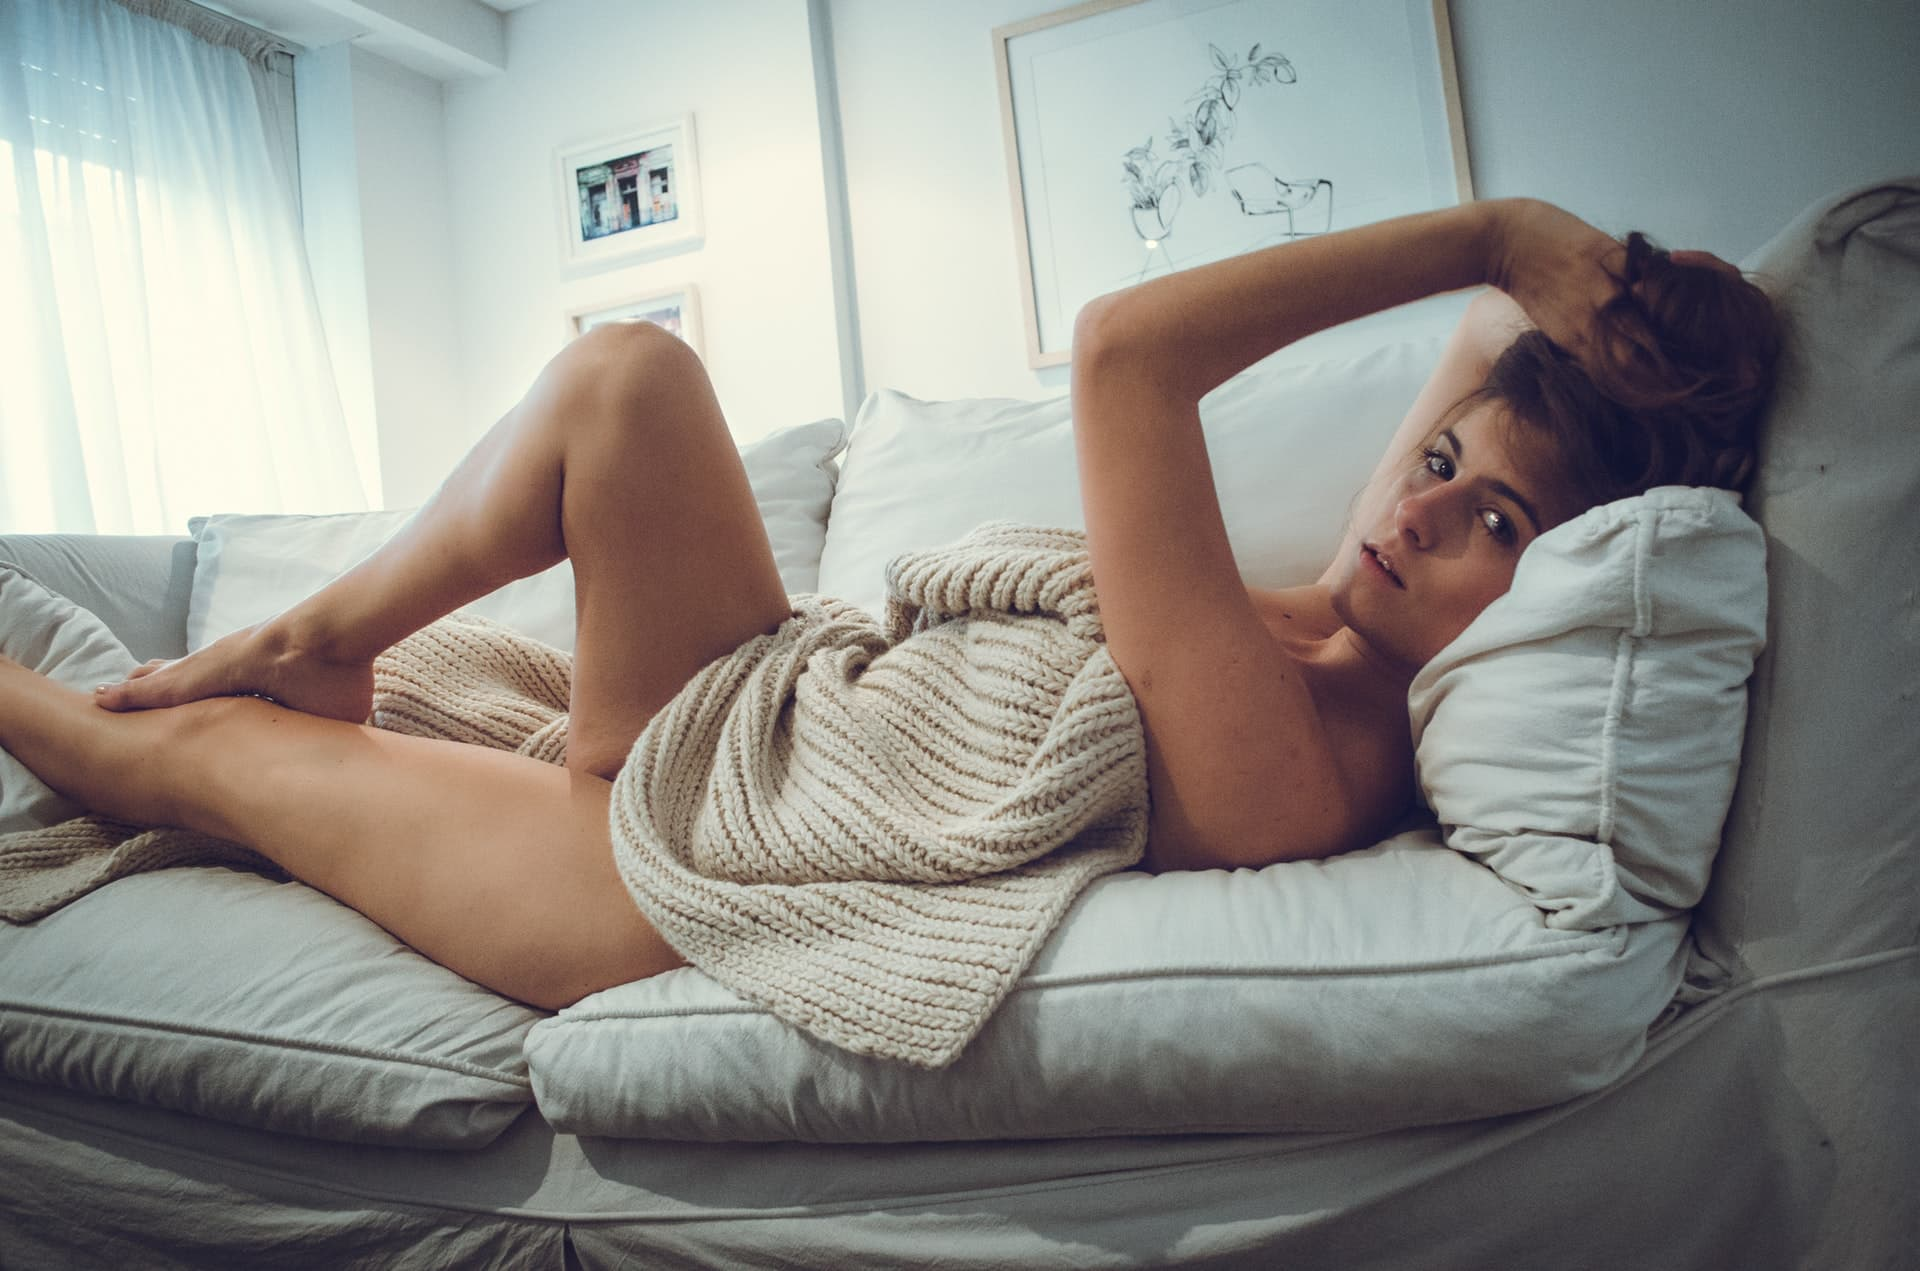 Beautiful woman posing in the nude on a sofa with a knitted sweater showing her body, thighs, legs and bare feet